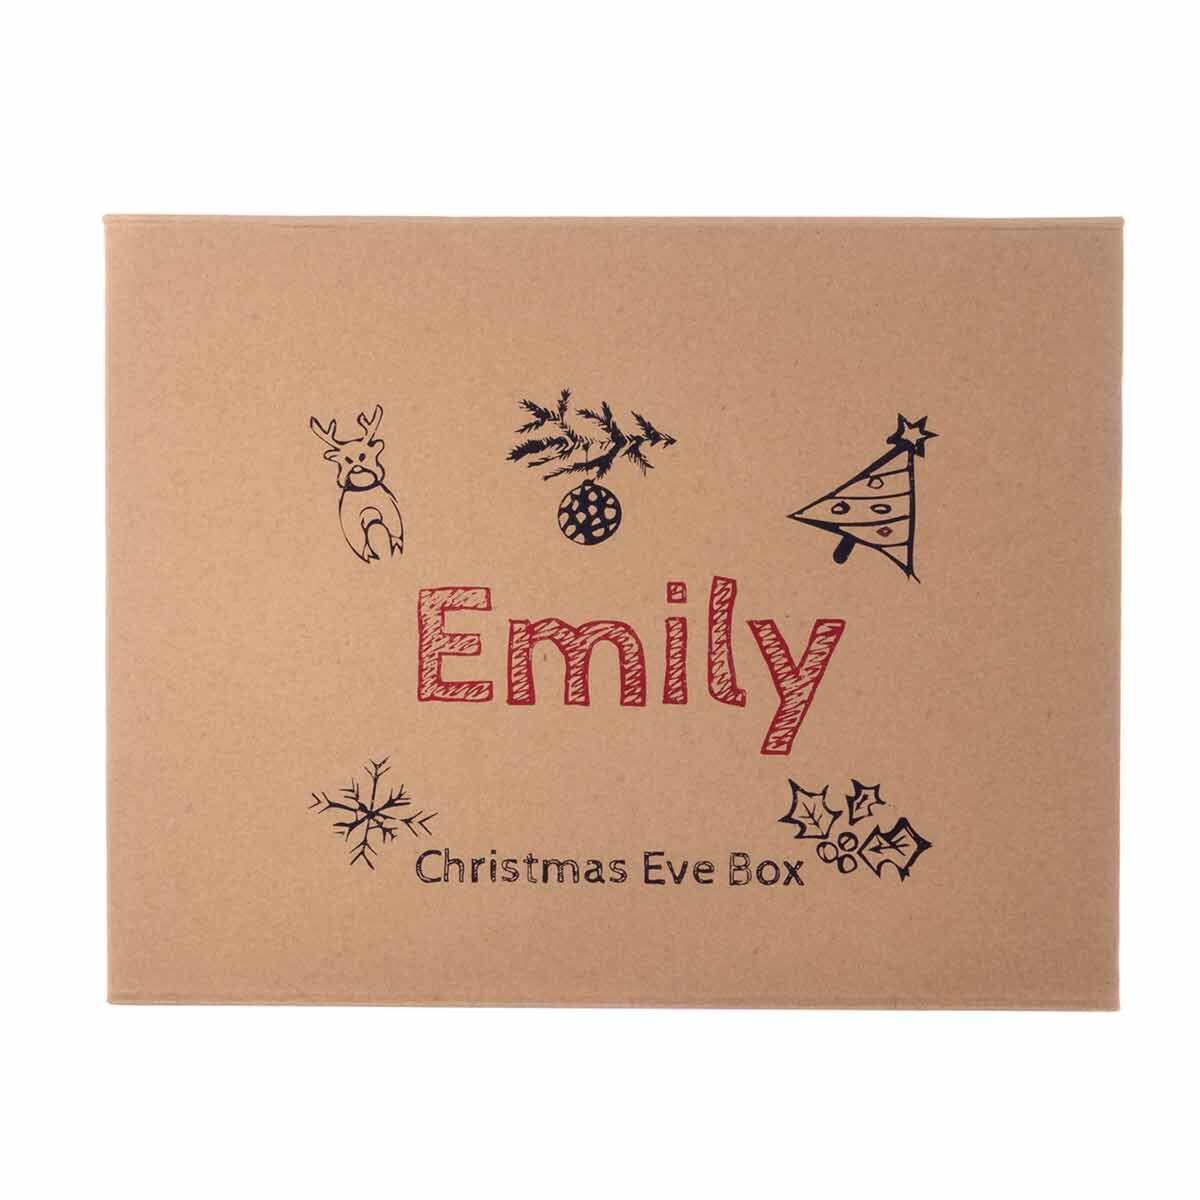 Personalised Christmas Eve Gift Box Childrens Design